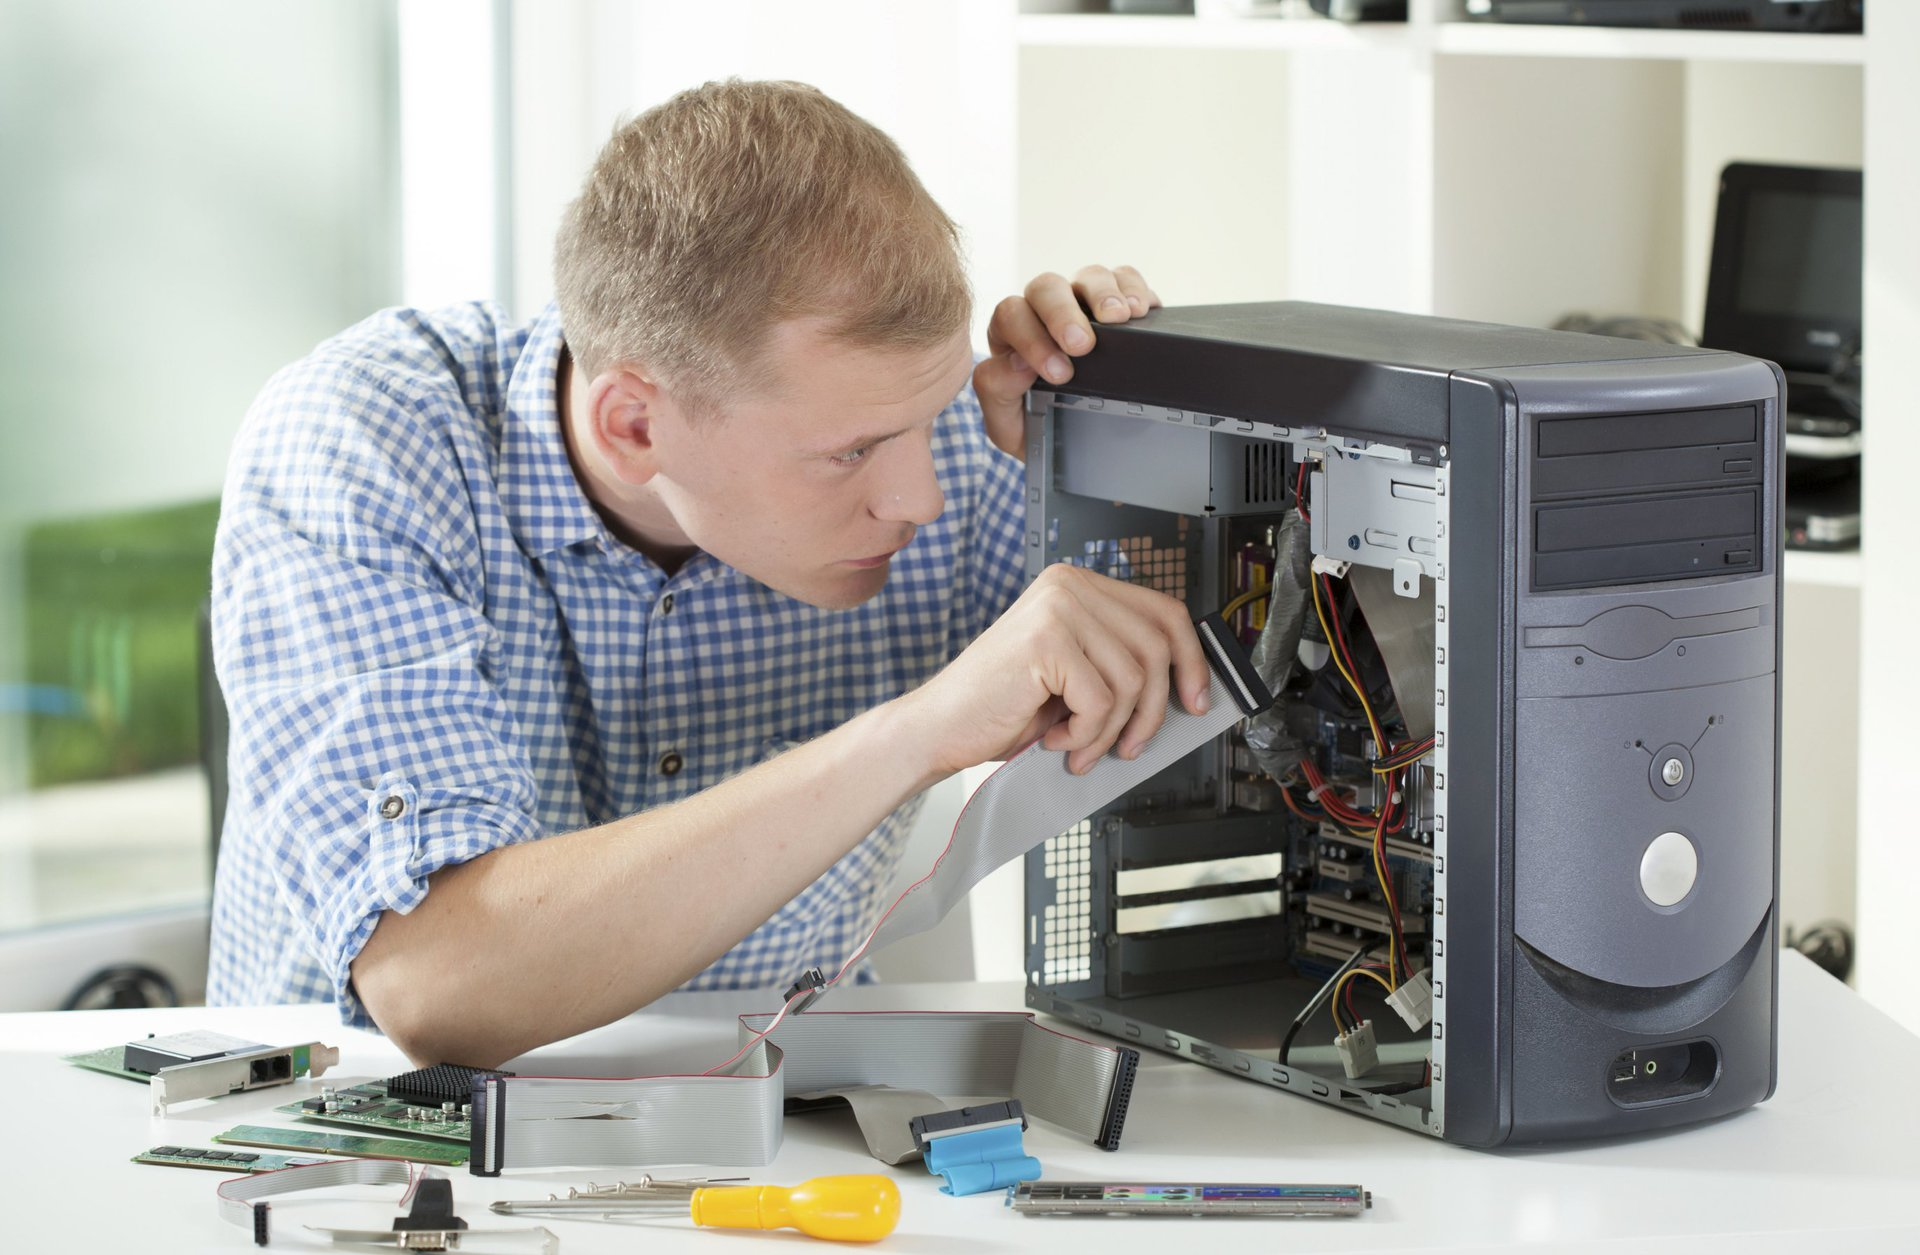 Trilby FL On Site Computer PC & Printer Repair, Networking, Voice & Data Cabling Services